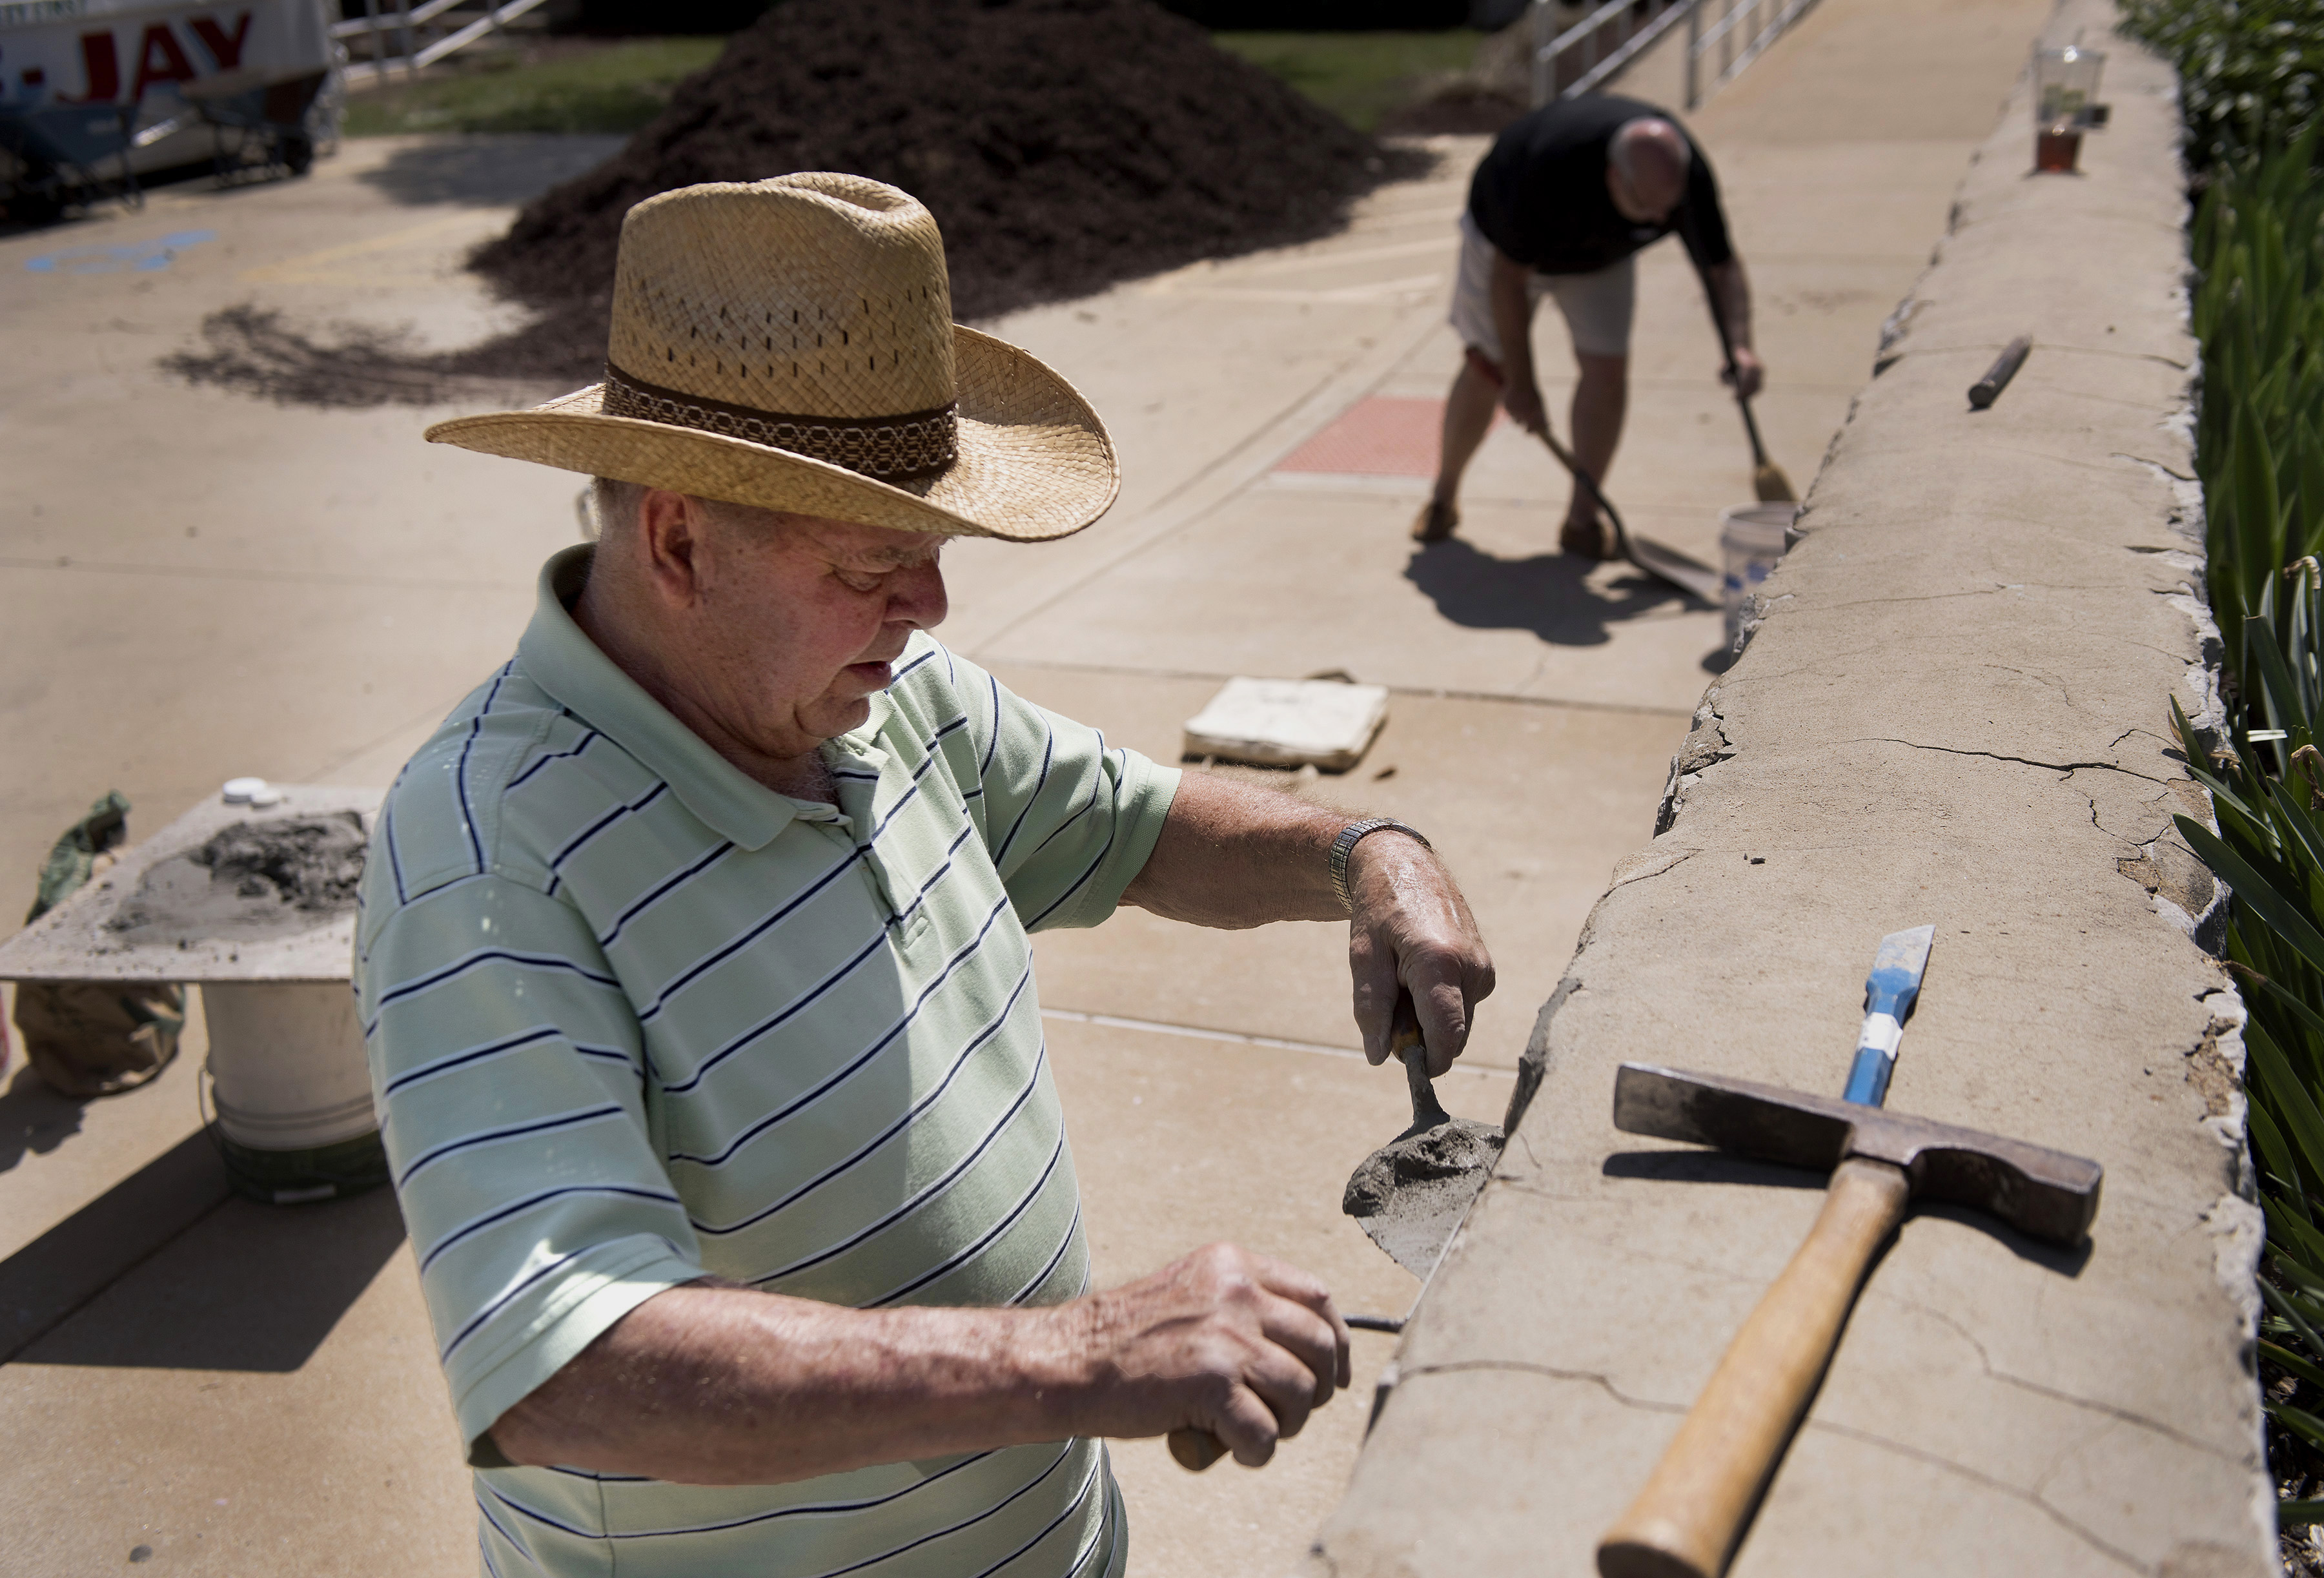 Tom Van Mirelo joined other parishioners from St. Justin Martyr Parish in tuckpointing a wall outside the school as part of the parish's day of service. The service day included preparing meals for the homebound and homeless, making blankets for those in need and performing home repair and lawn care for area residents.